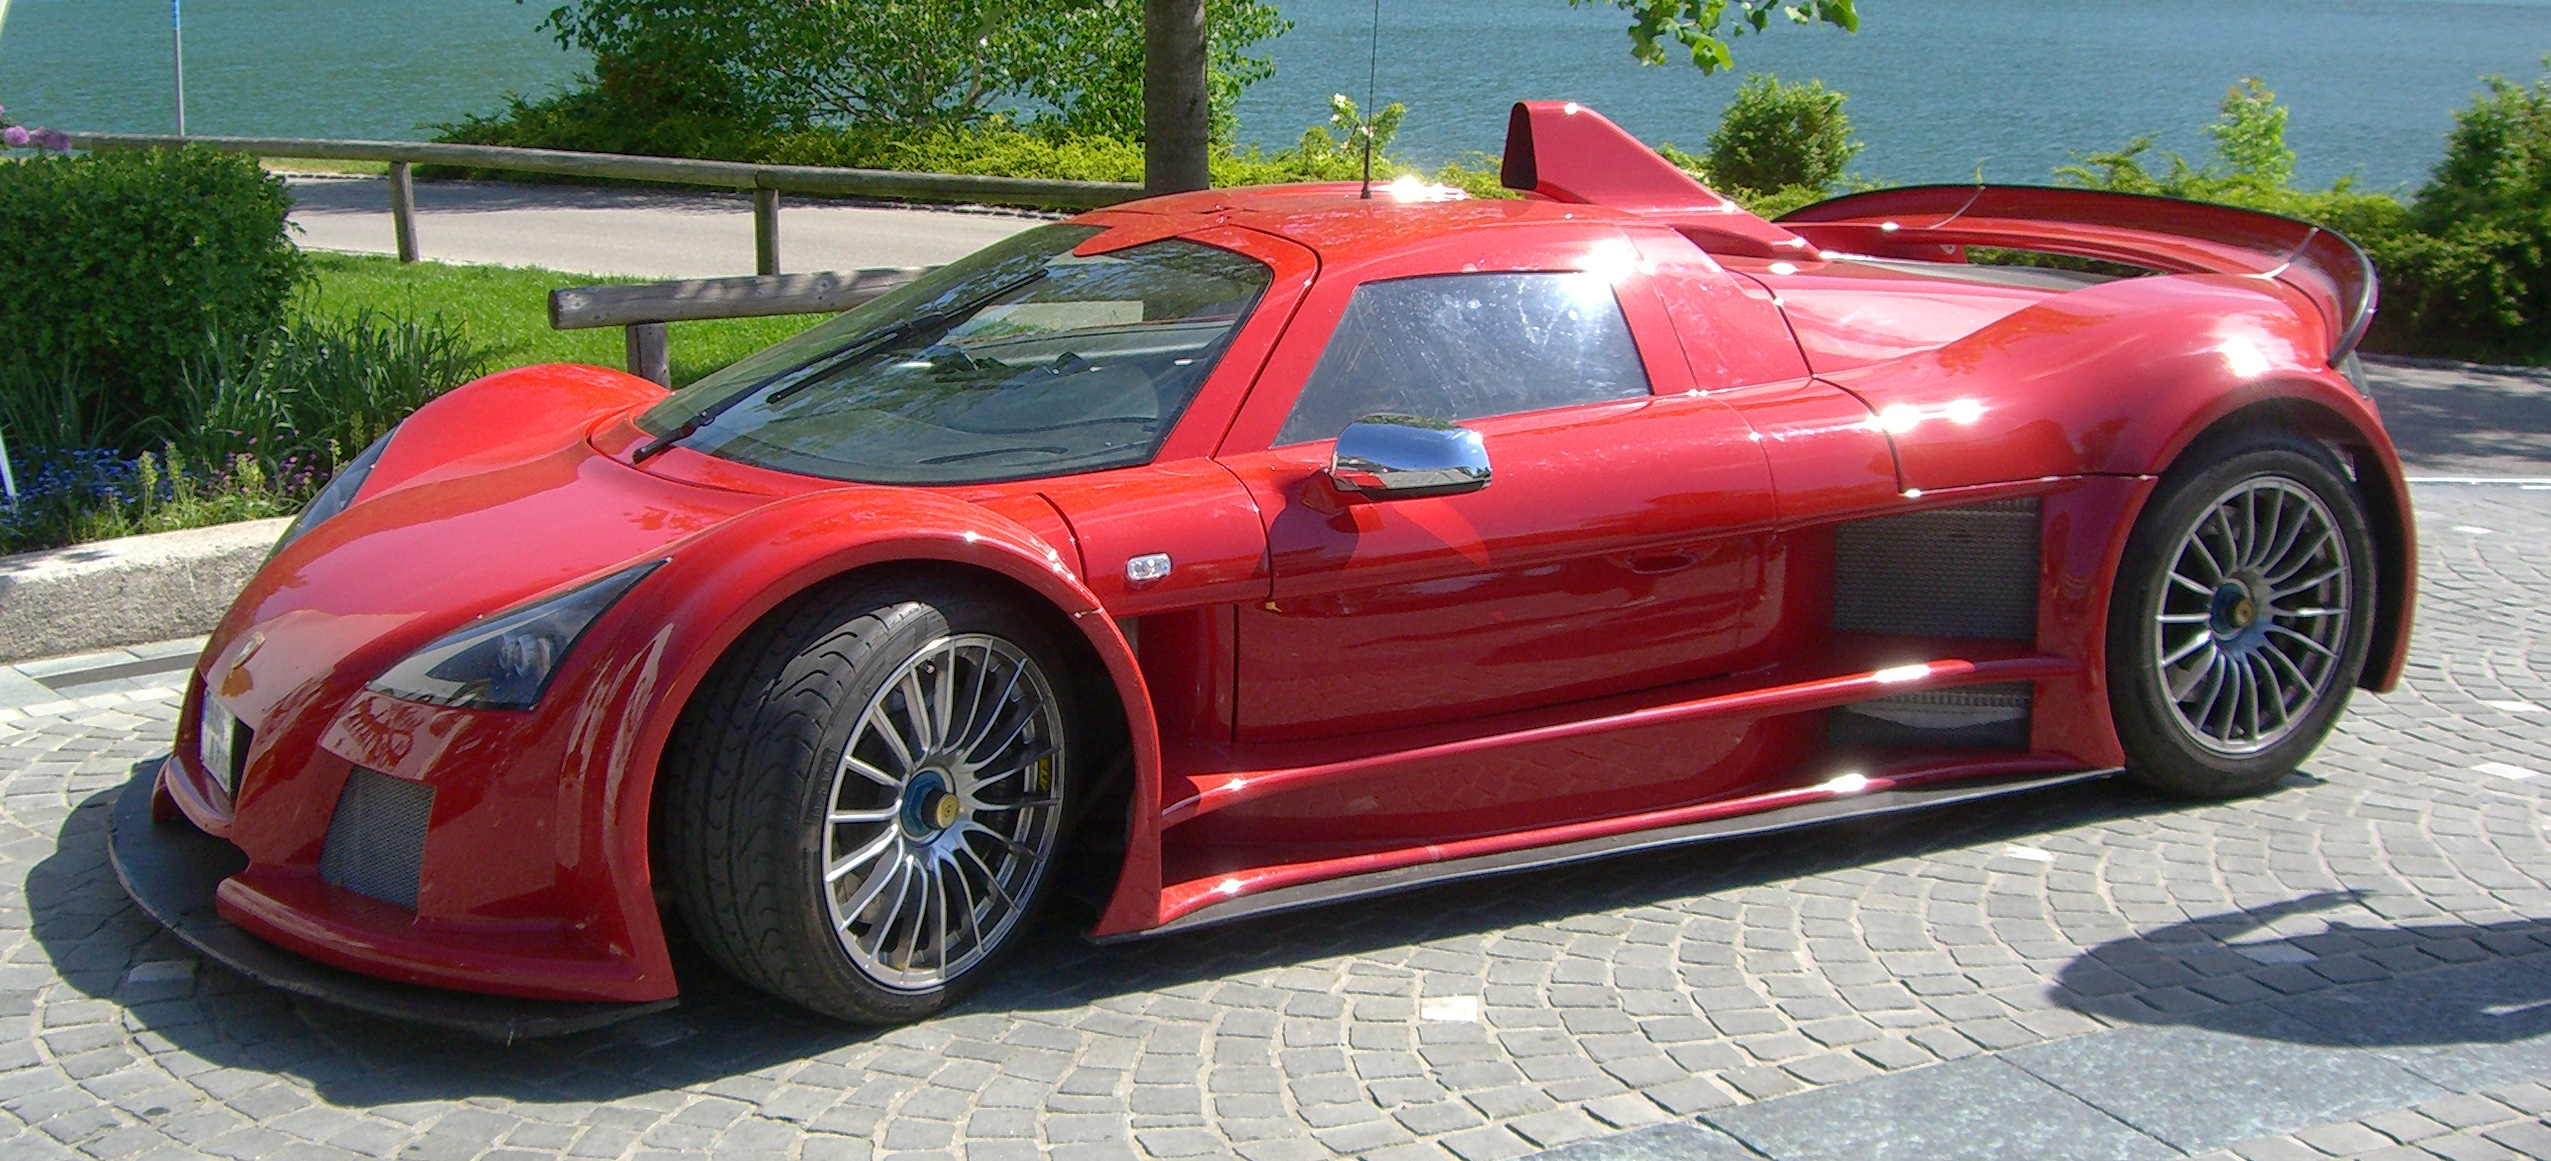 Gumpert apollo photo - 1